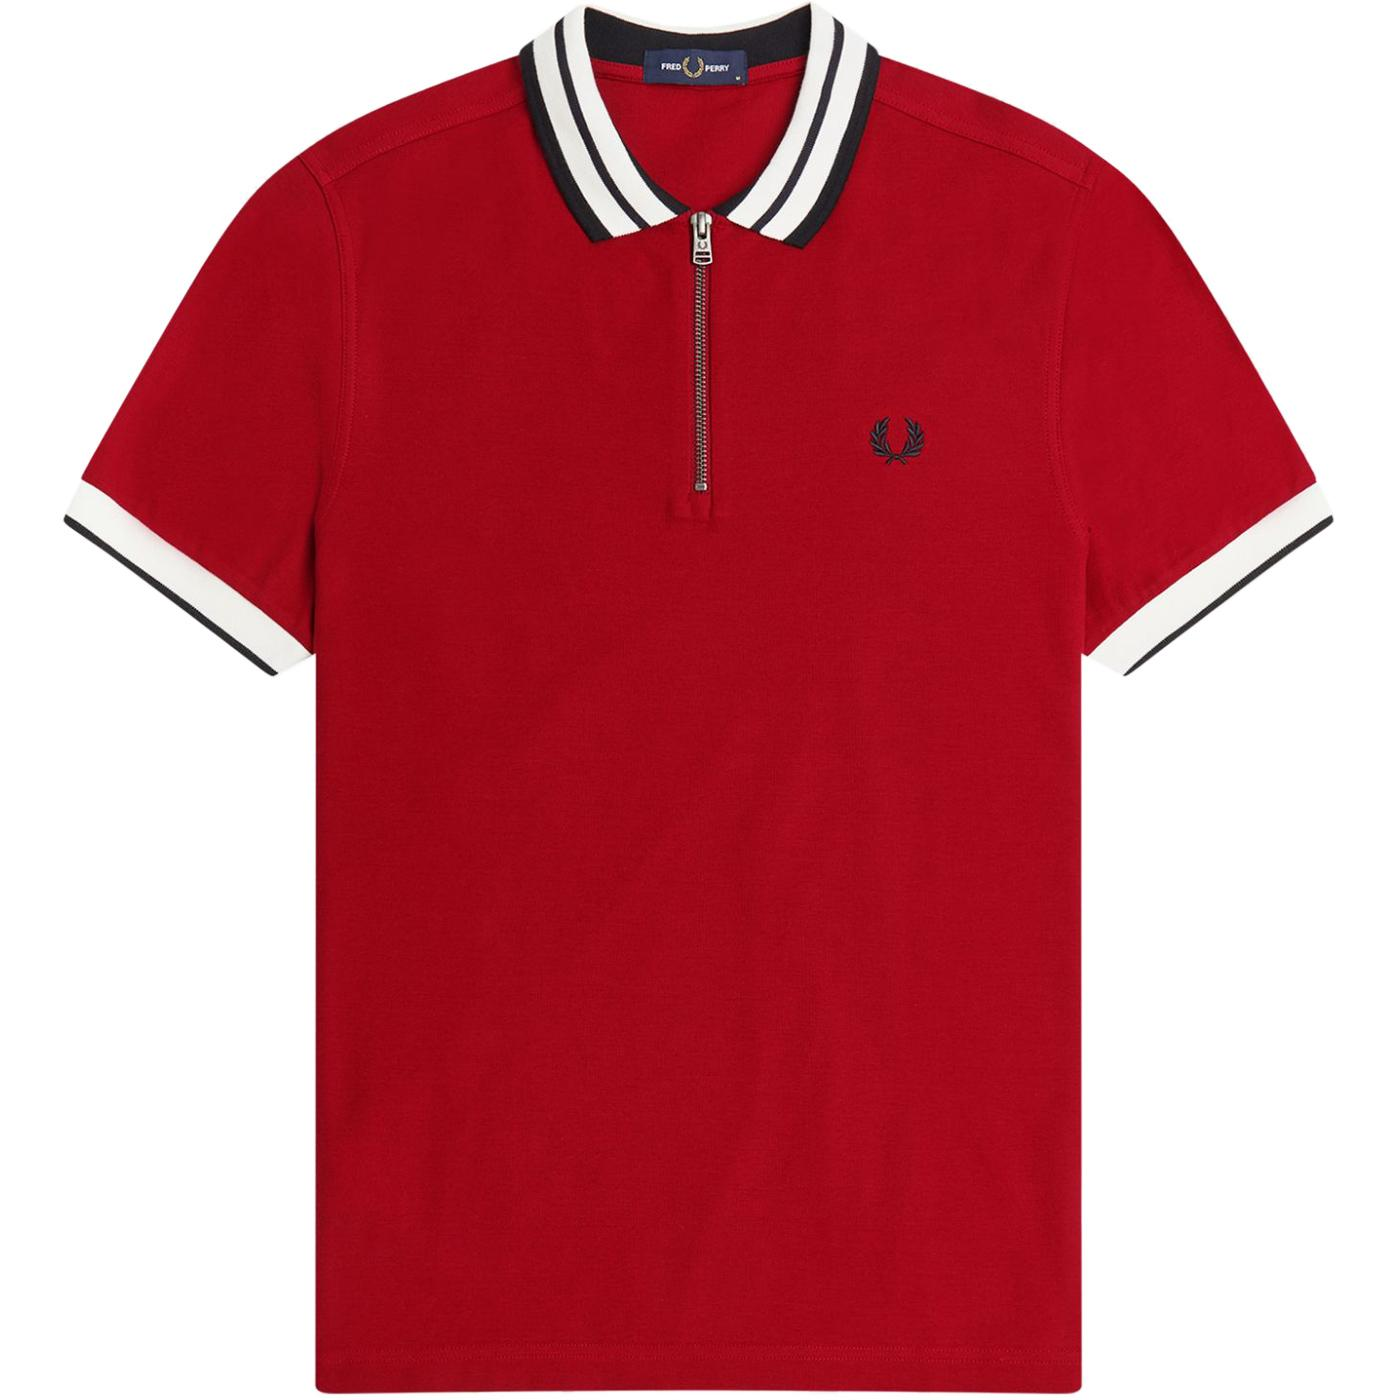 FRED PERRY Mod Bold Tipped Zip Neck Polo (Blood)